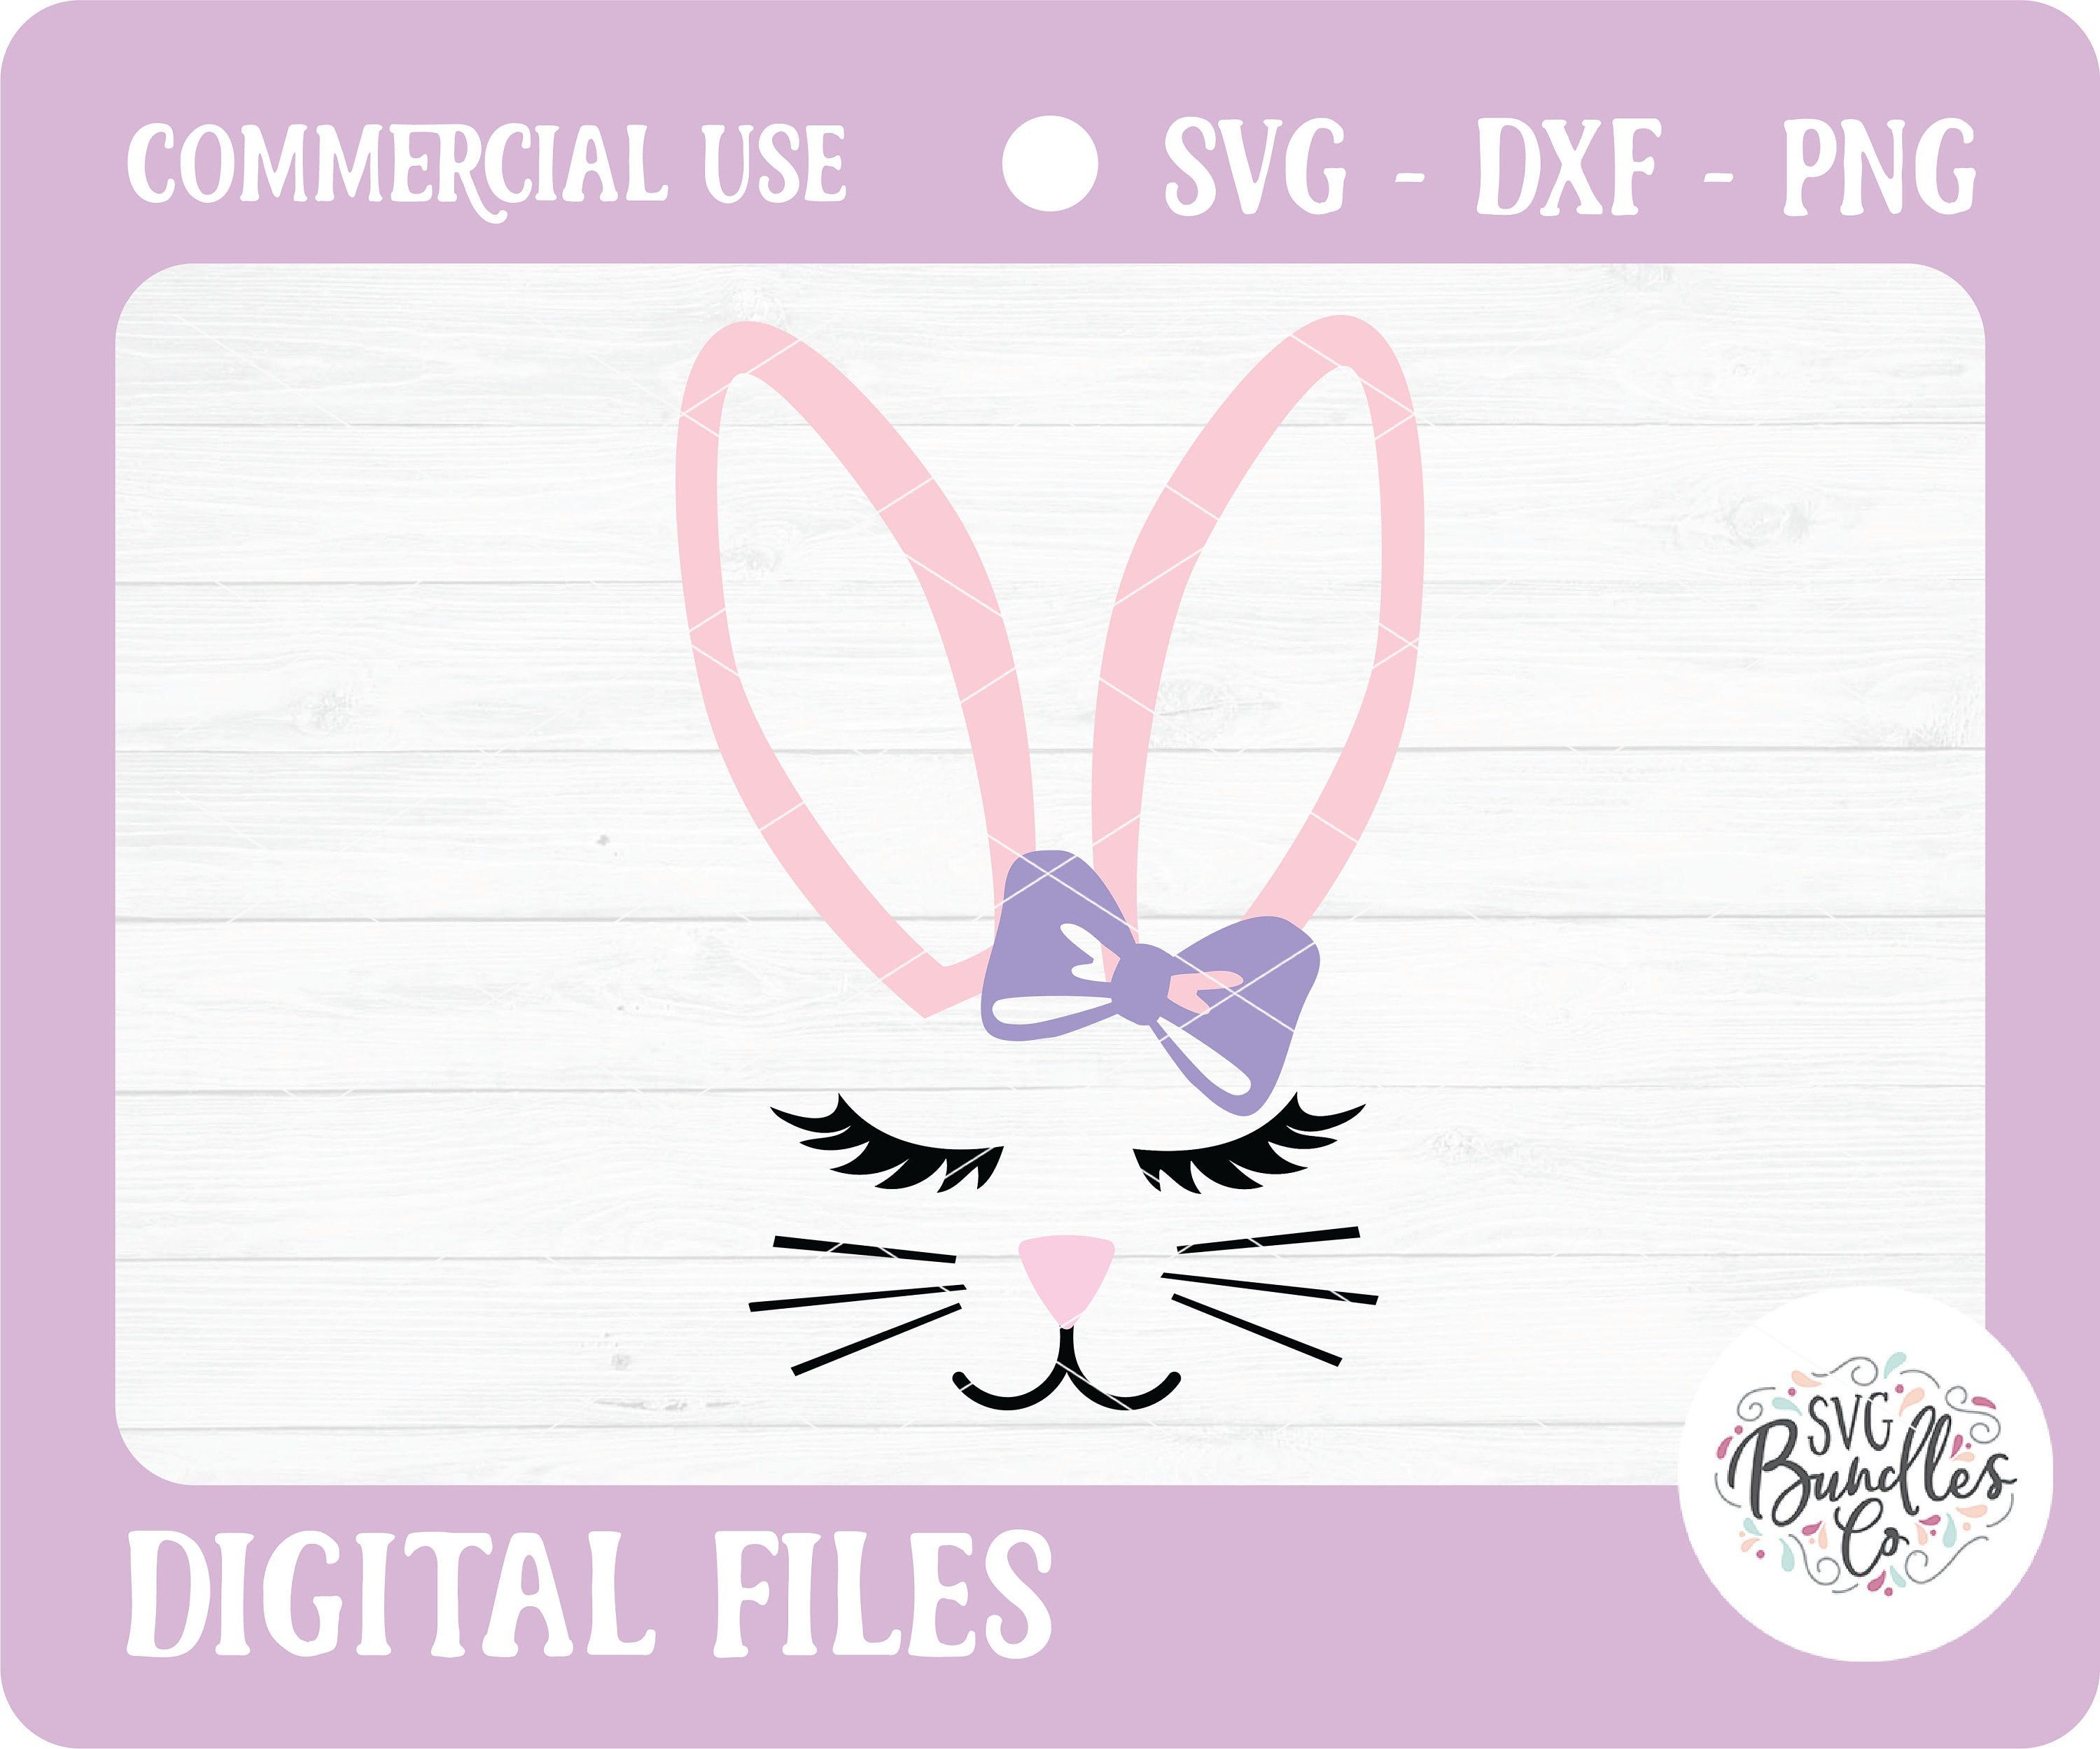 Instant Svg Dxf Png Cute Bunny Face Easter Bunny Svg Easter Svg Silhouette Cricut Bunny Svg Easter Party Svg Png Bags Decor Svg Bunny Svg Bunny Face Cute Bunny